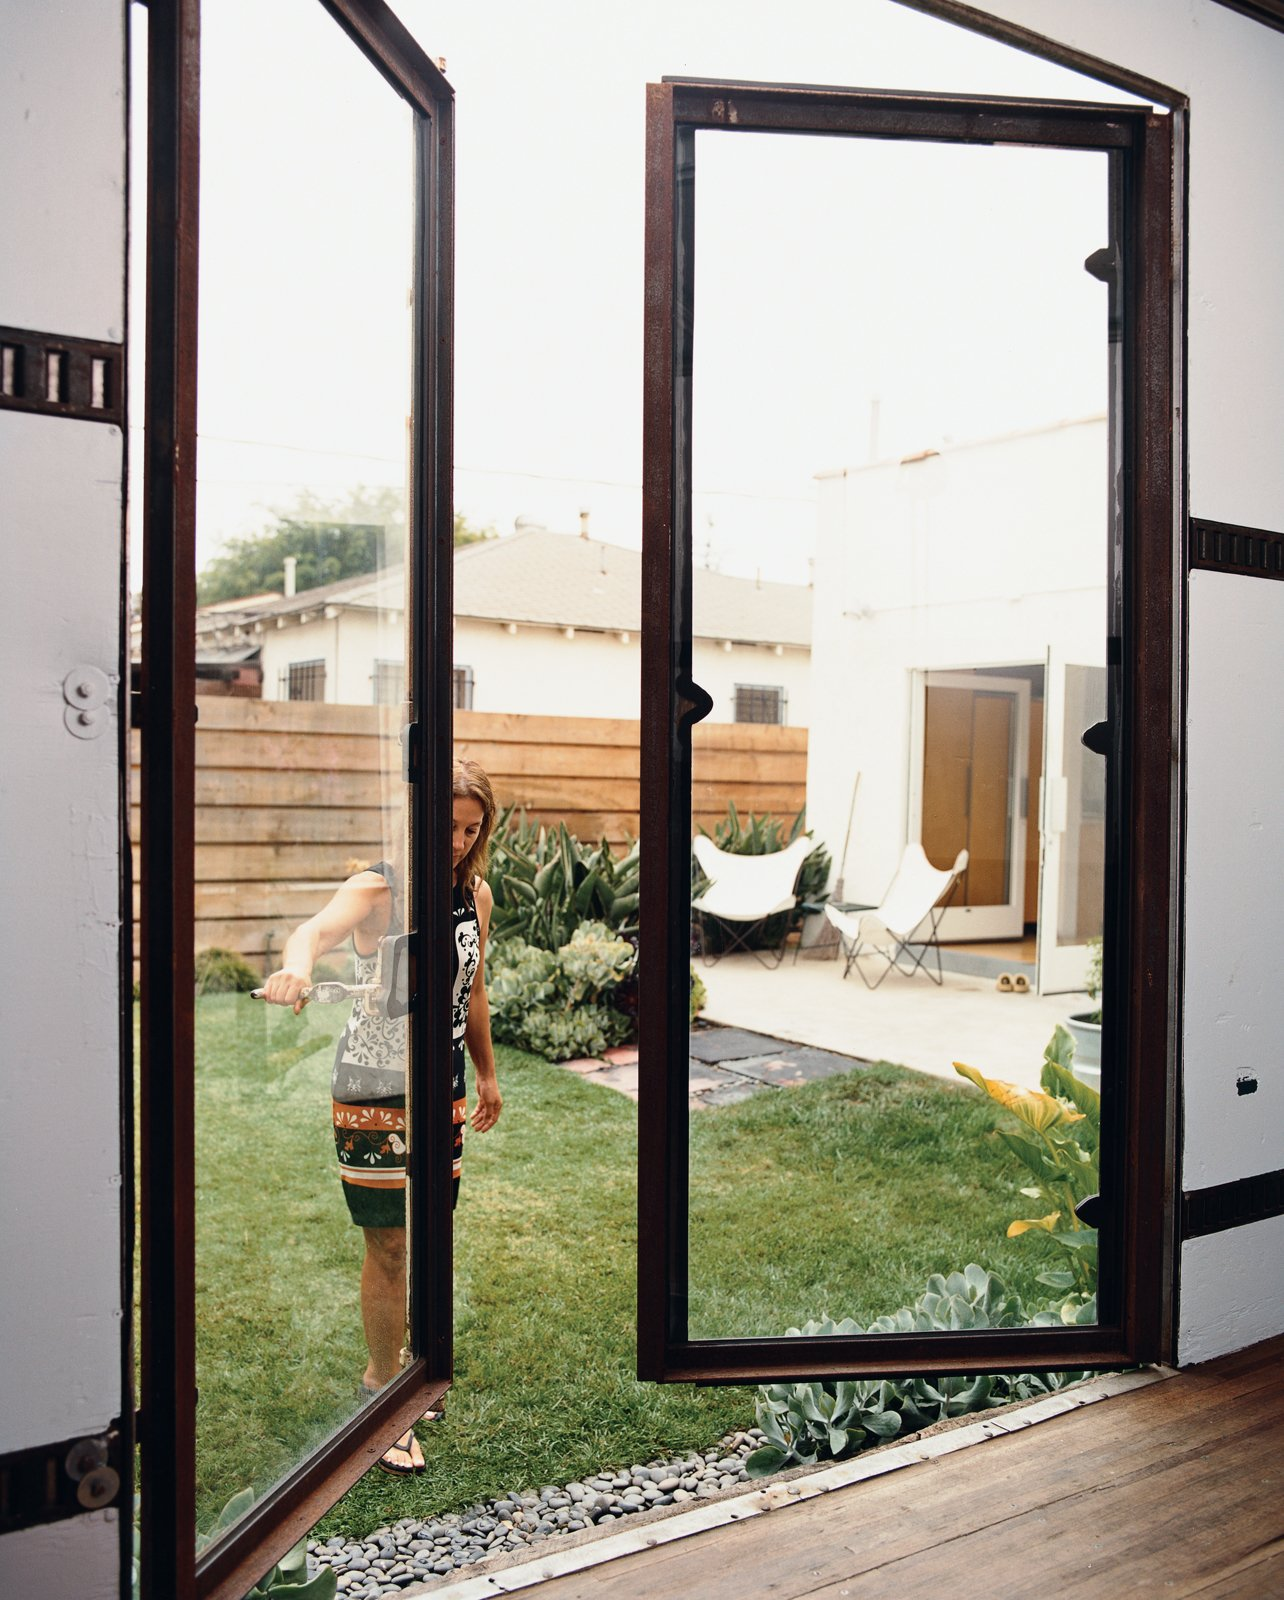 The first phase of rehabbing the backyard trailer was fabricating custom steel-and-glass doors.